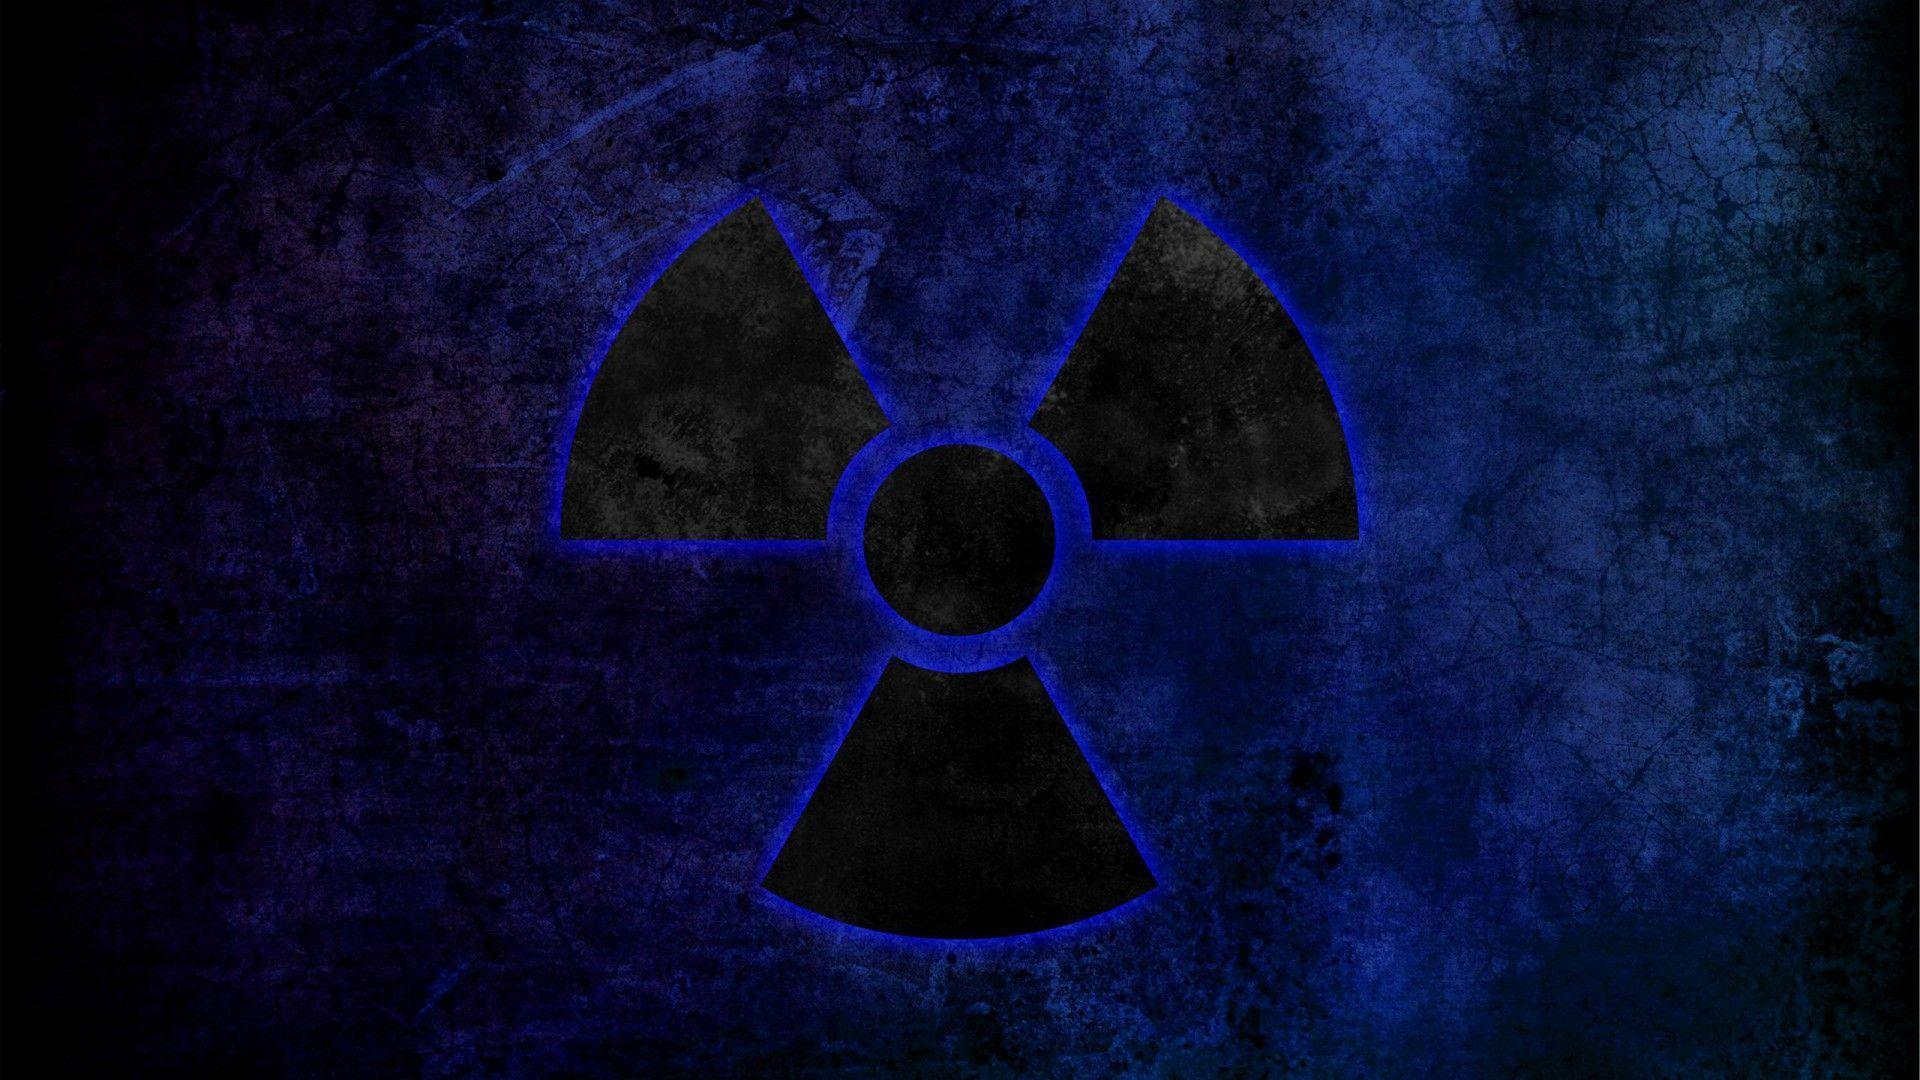 Pin Nuclear Signs Radioactive Logos Area Wallpaper on Pinterest